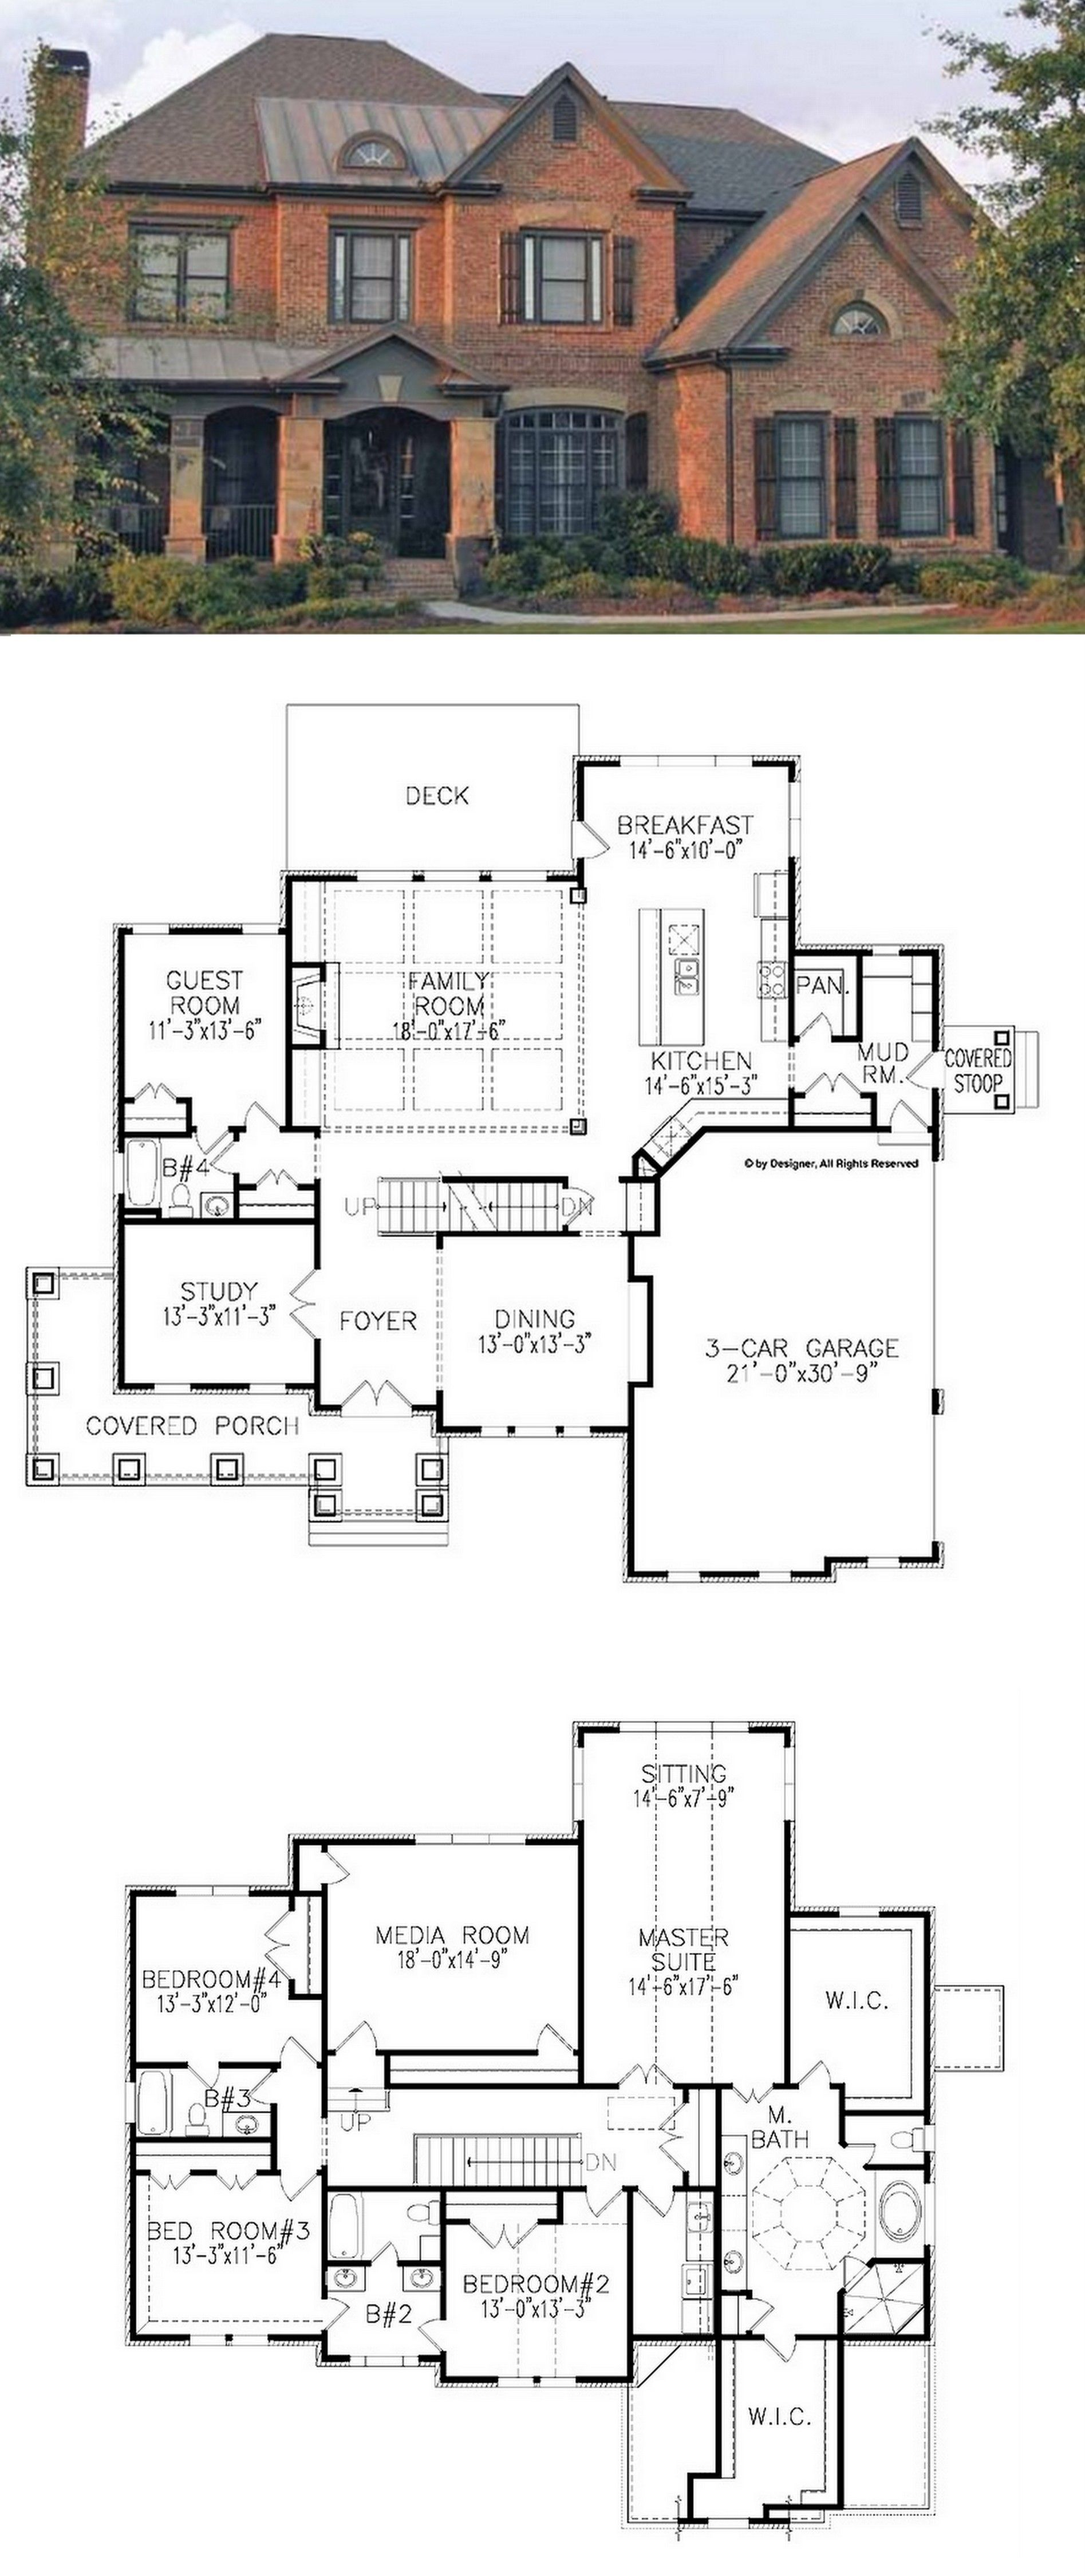 Traditional house plan with square feet and bedrooms from